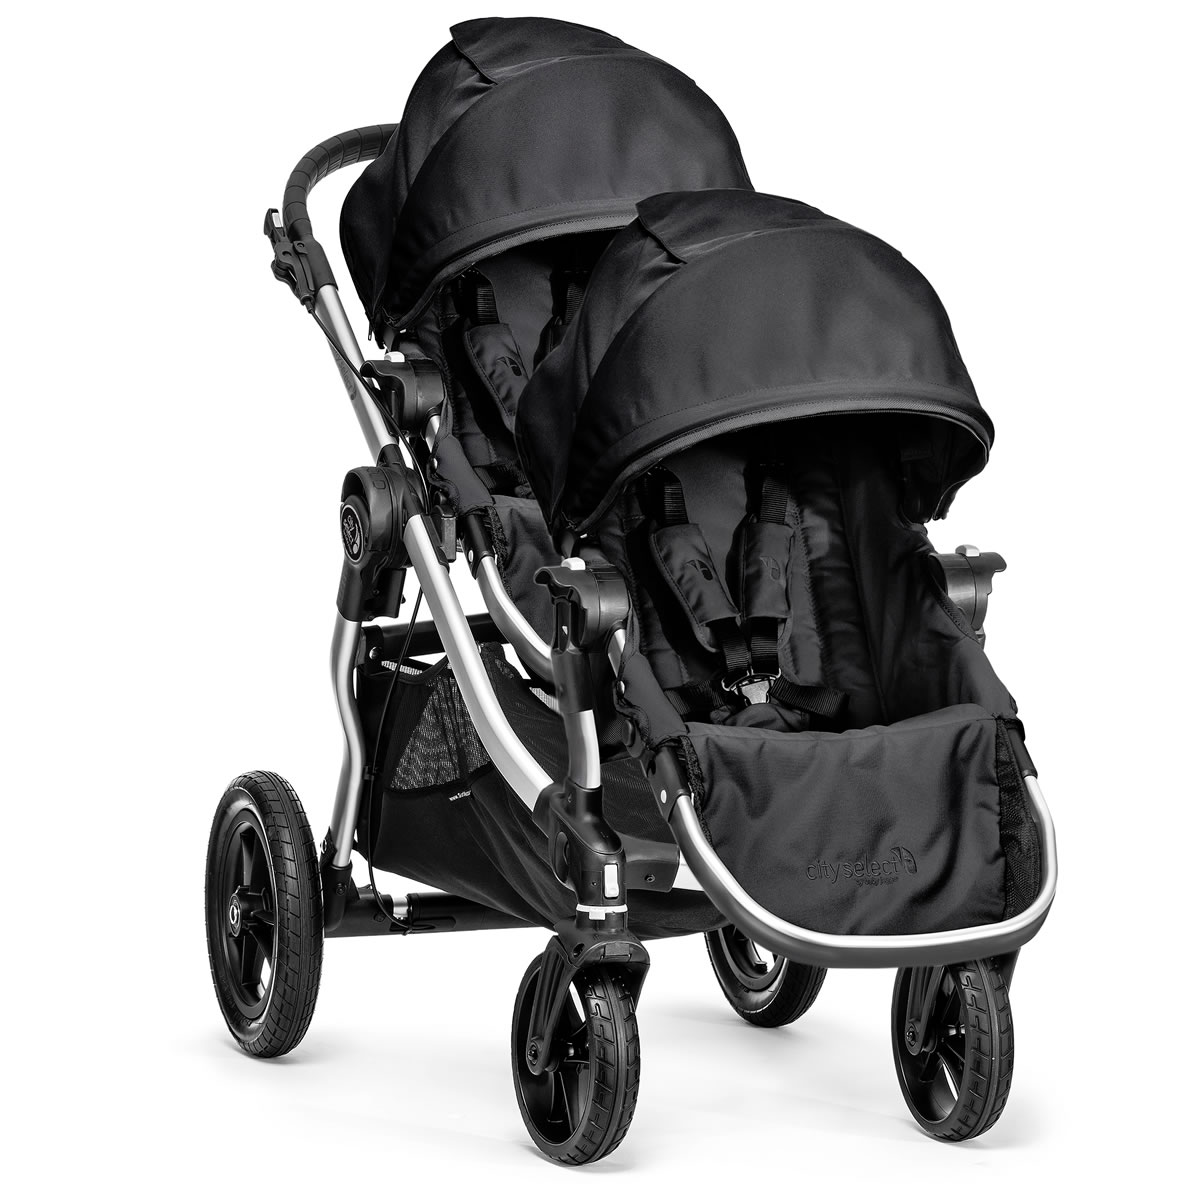 Baby Jogger City Select Double Stroller - Onyx